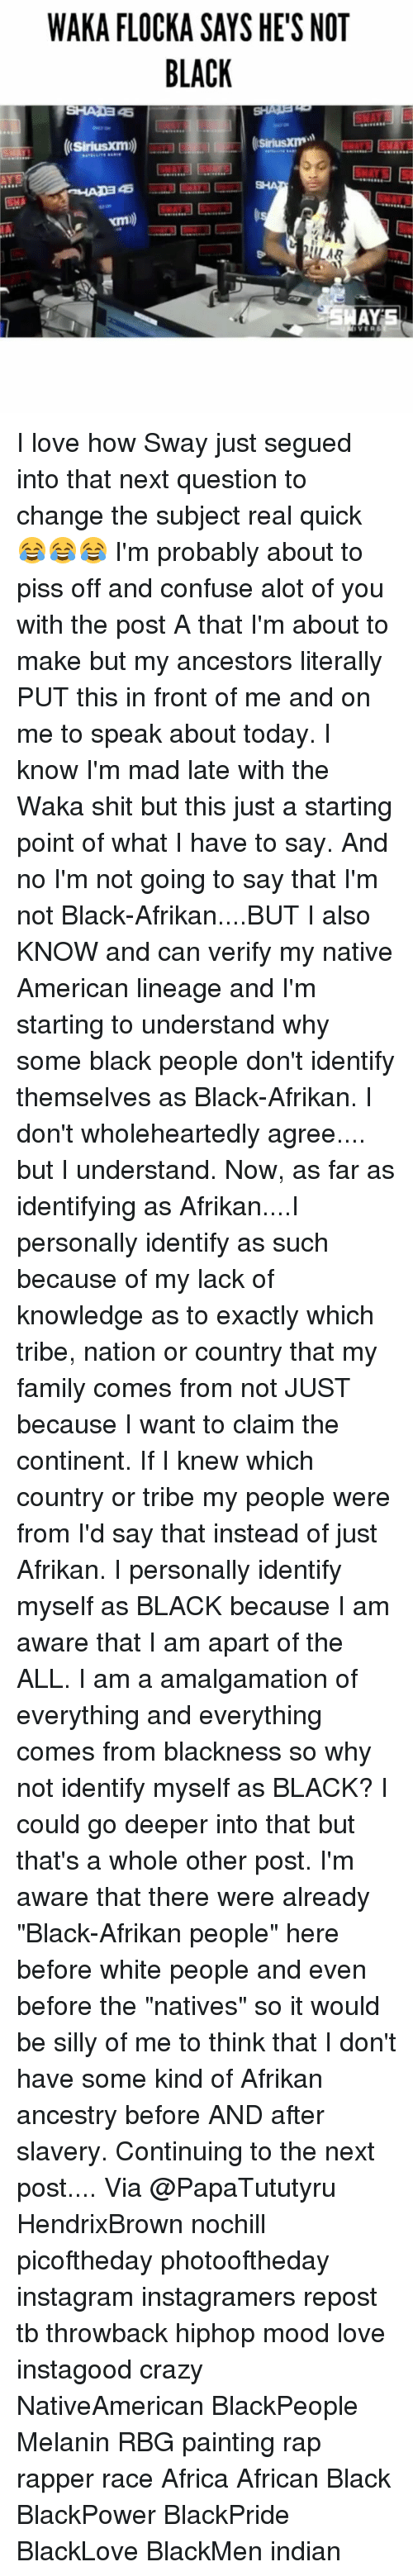 """a-starting-point: WAKA FLOCKA SAYS HE'S NOT  BLACK I love how Sway just segued into that next question to change the subject real quick 😂😂😂 I'm probably about to piss off and confuse alot of you with the post A that I'm about to make but my ancestors literally PUT this in front of me and on me to speak about today. I know I'm mad late with the Waka shit but this just a starting point of what I have to say. And no I'm not going to say that I'm not Black-Afrikan....BUT I also KNOW and can verify my native American lineage and I'm starting to understand why some black people don't identify themselves as Black-Afrikan. I don't wholeheartedly agree.... but I understand. Now, as far as identifying as Afrikan....I personally identify as such because of my lack of knowledge as to exactly which tribe, nation or country that my family comes from not JUST because I want to claim the continent. If I knew which country or tribe my people were from I'd say that instead of just Afrikan. I personally identify myself as BLACK because I am aware that I am apart of the ALL. I am a amalgamation of everything and everything comes from blackness so why not identify myself as BLACK? I could go deeper into that but that's a whole other post. I'm aware that there were already """"Black-Afrikan people"""" here before white people and even before the """"natives"""" so it would be silly of me to think that I don't have some kind of Afrikan ancestry before AND after slavery. Continuing to the next post.... Via @PapaTututyru HendrixBrown nochill picoftheday photooftheday instagram instagramers repost tb throwback hiphop mood love instagood crazy NativeAmerican BlackPeople Melanin RBG painting rap rapper race Africa African Black BlackPower BlackPride BlackLove BlackMen indian"""